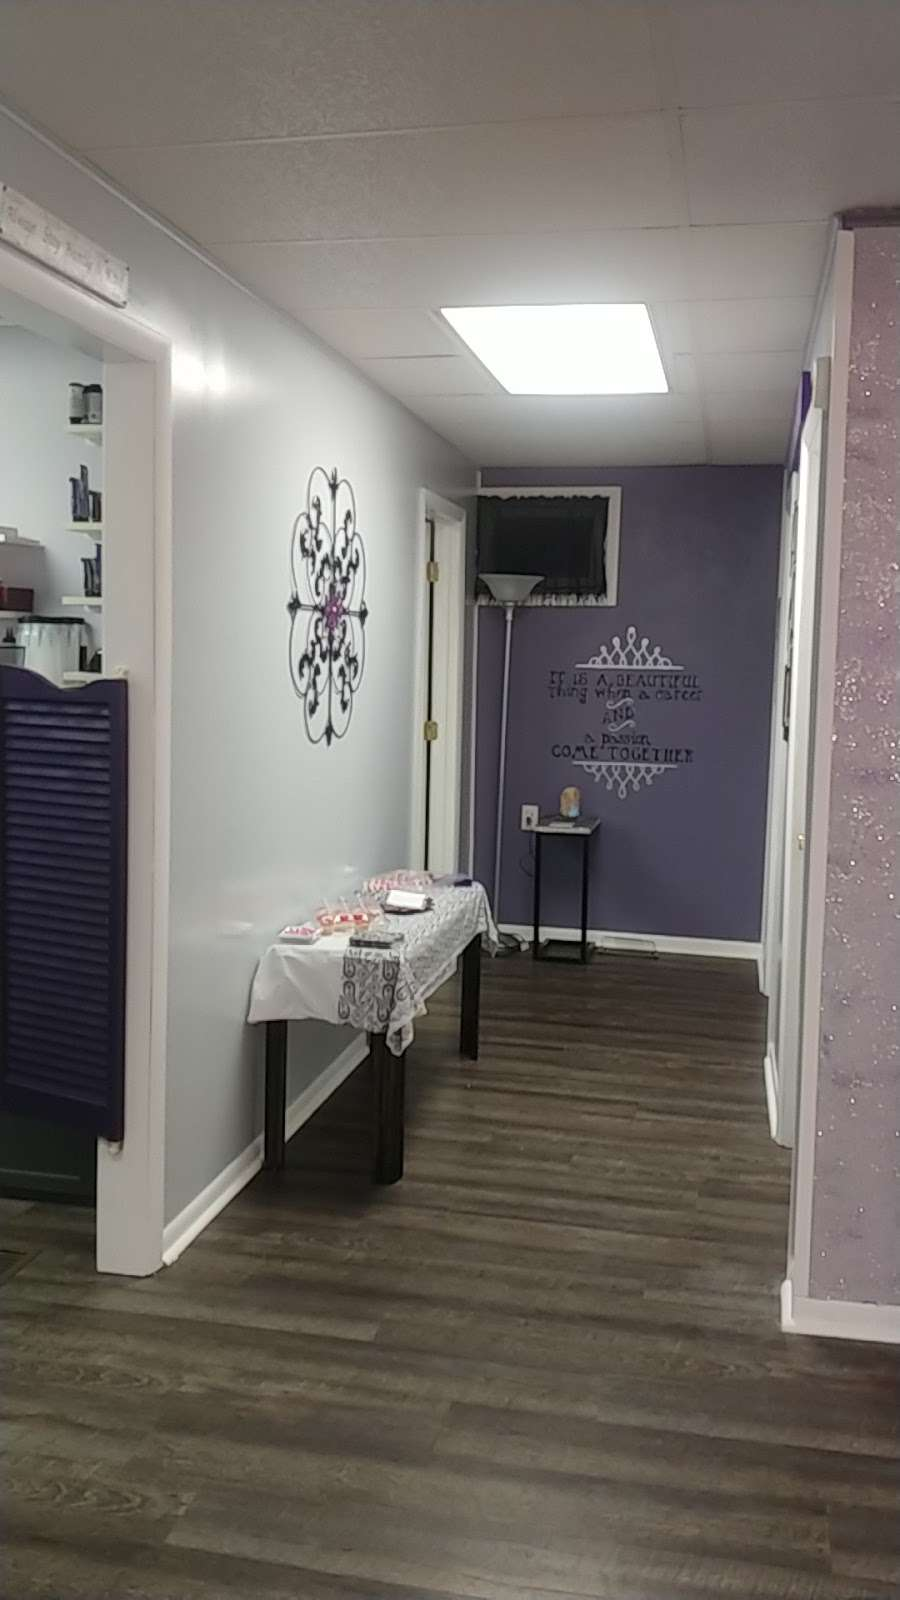 Salon 715 - hair care  | Photo 4 of 10 | Address: 715 N A St, Elwood, IN 46036, USA | Phone: (765) 552-9247